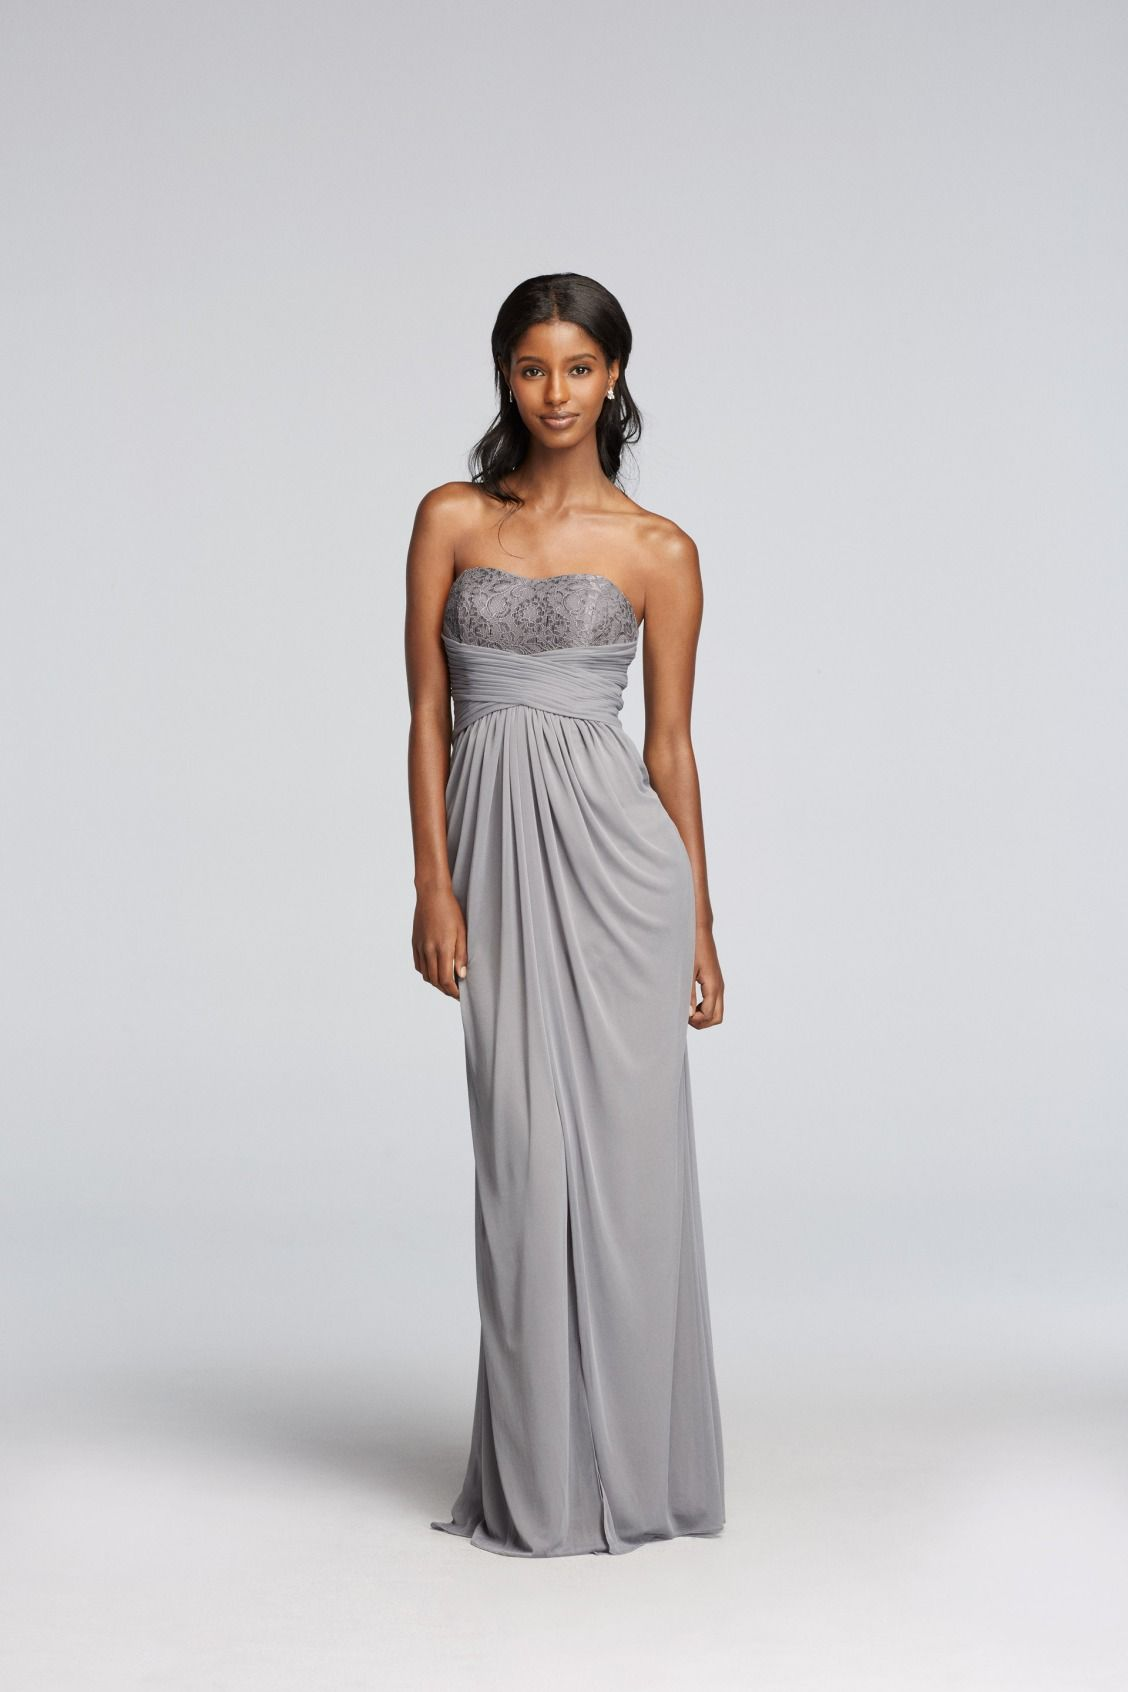 Silver long strapless metallic lace and pleated waist davids silver long strapless metallic lace and pleated waist davids bridal bridesmaid dress ombrellifo Choice Image